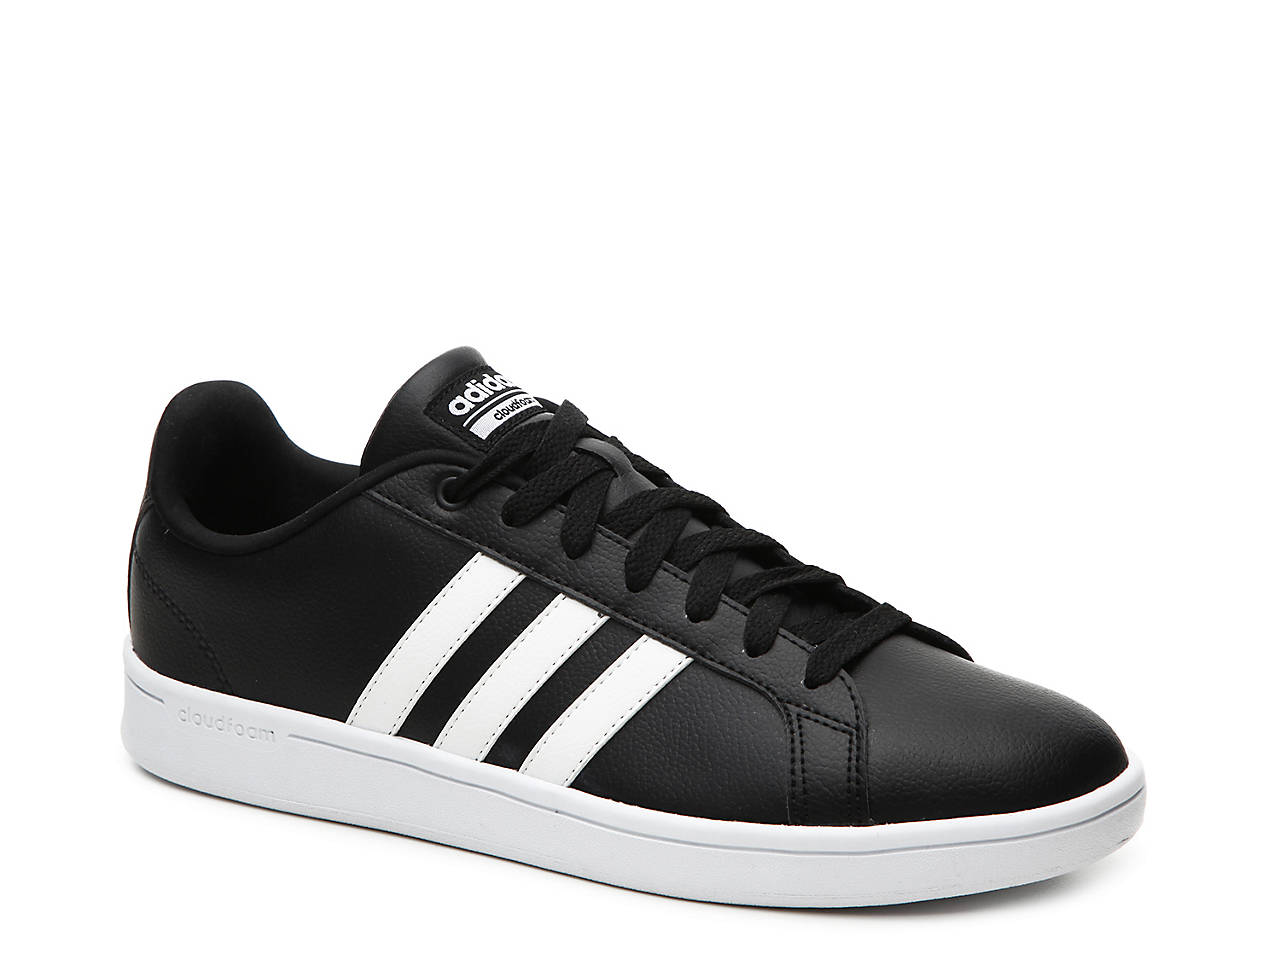 Shoes For Men 2013 Adidas adidas Advantag...